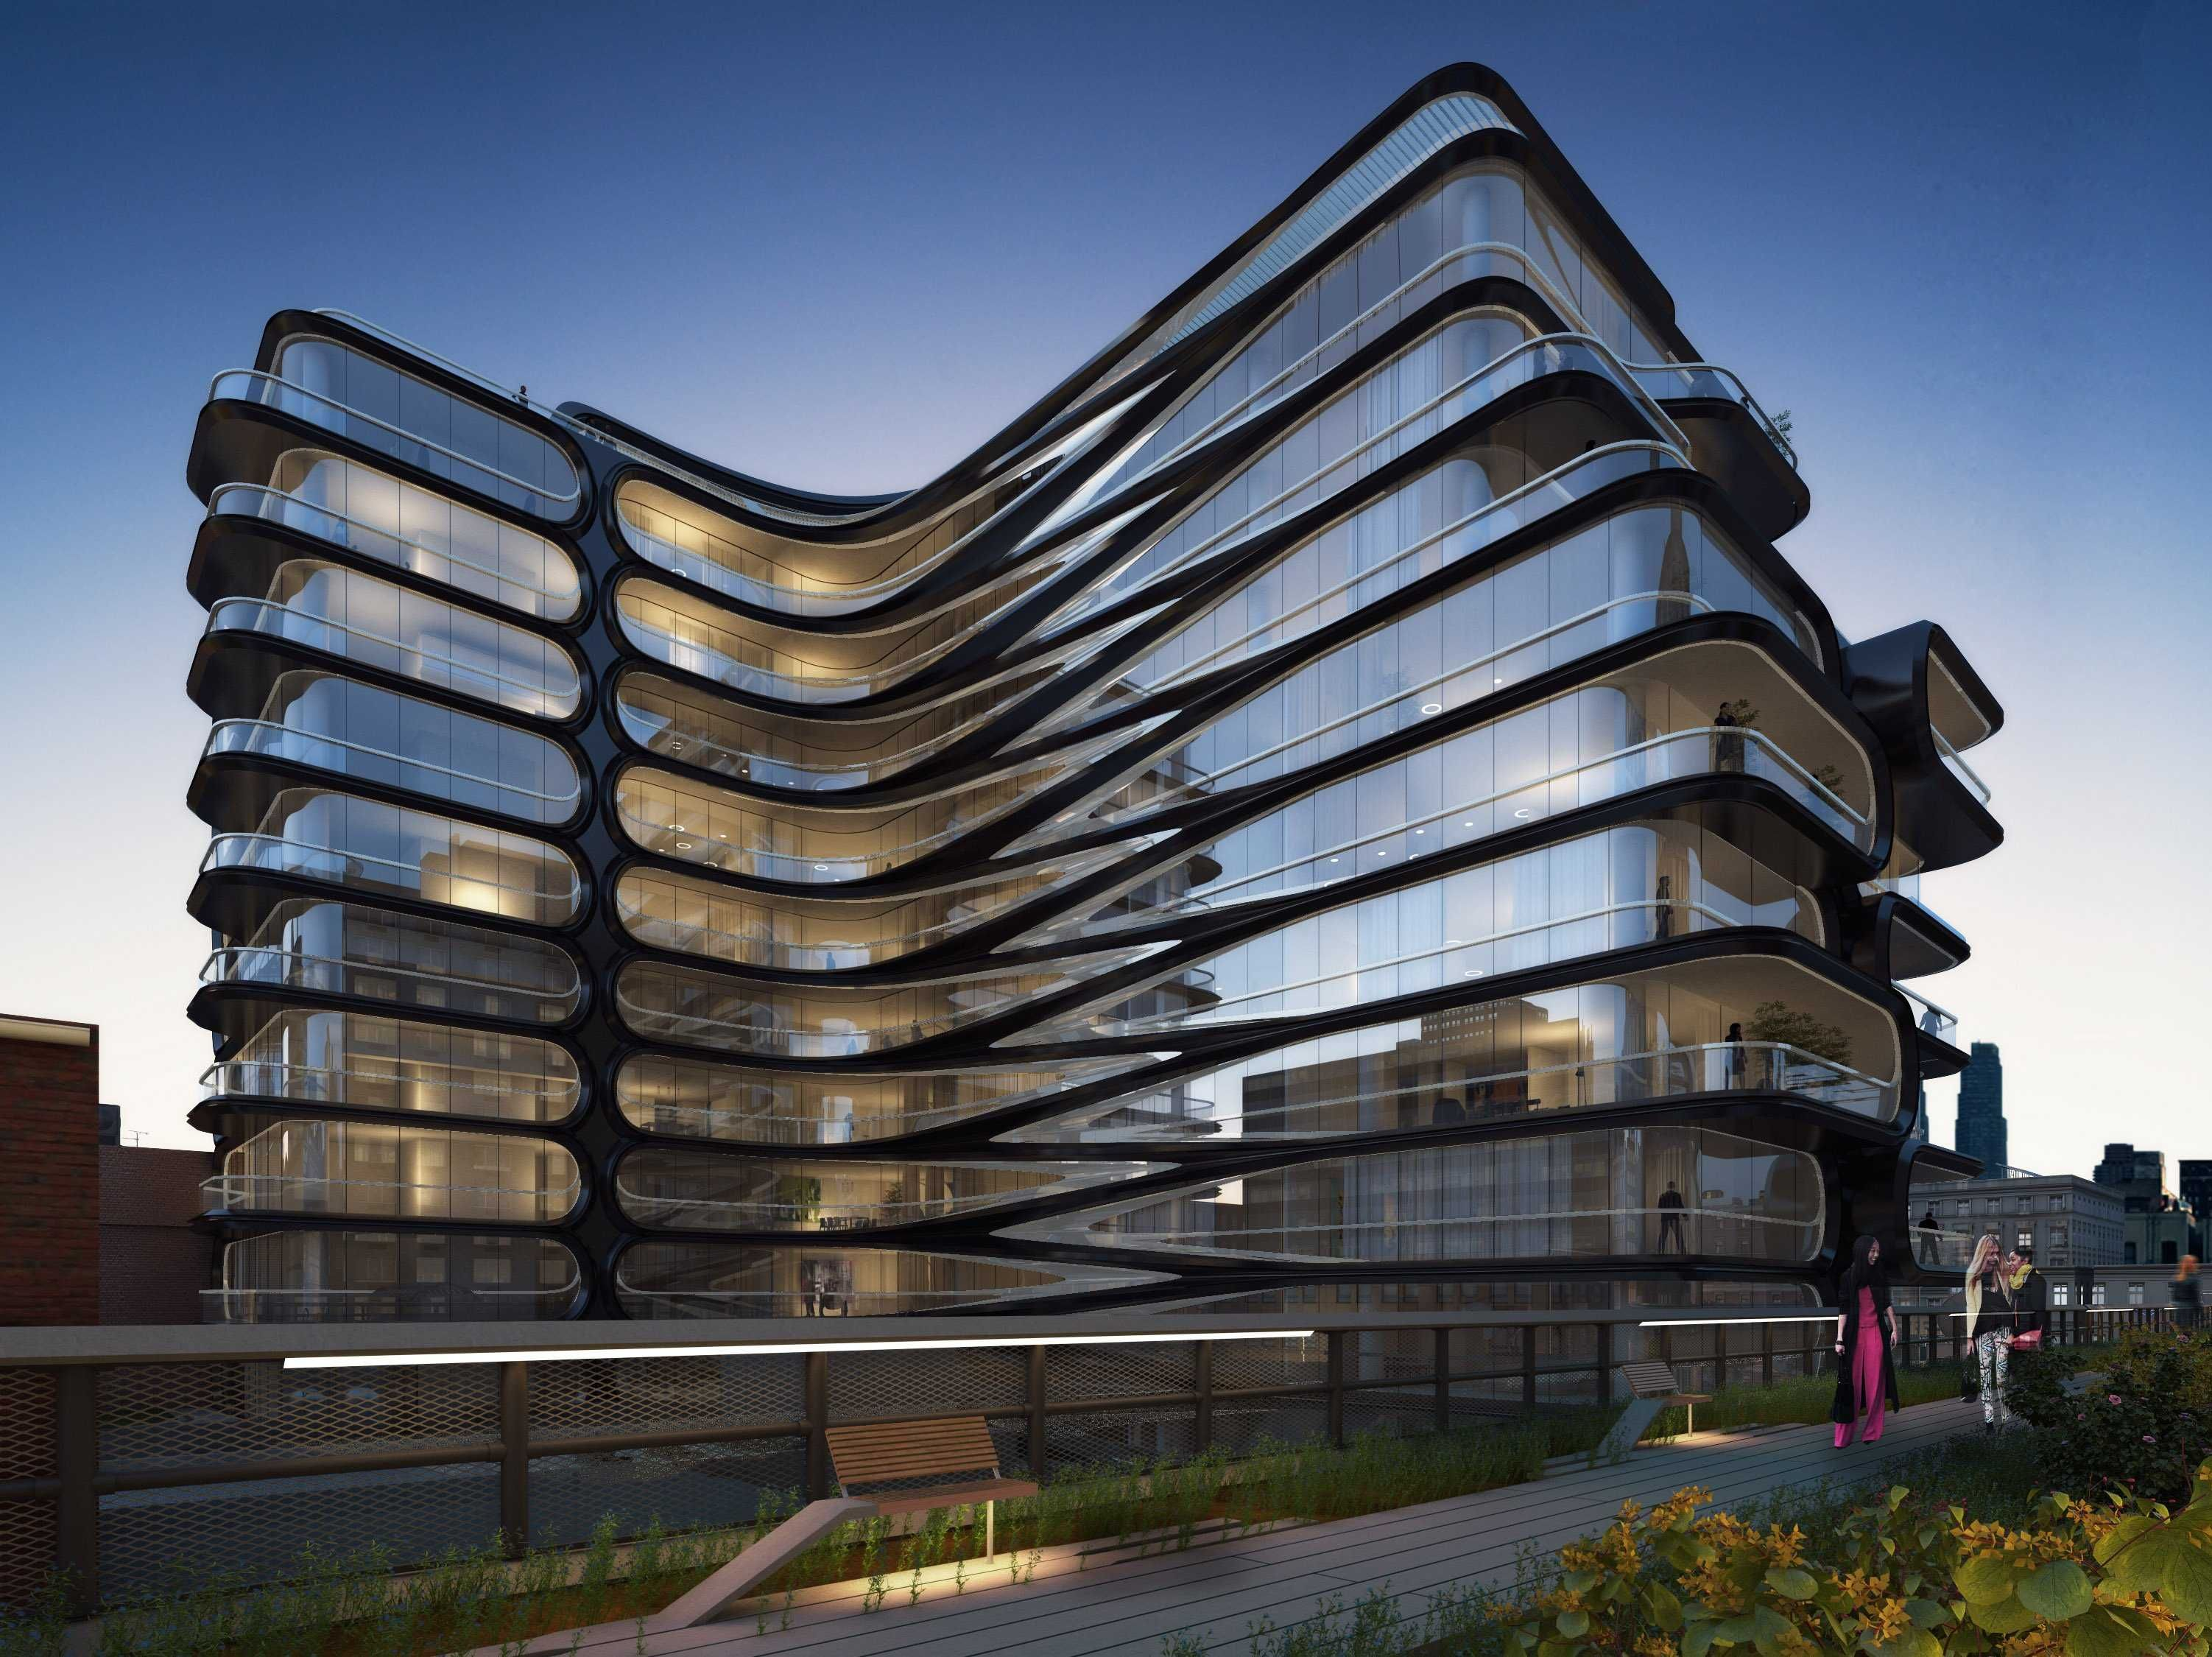 Famed Architect Zaha Hadid Unveils Her First